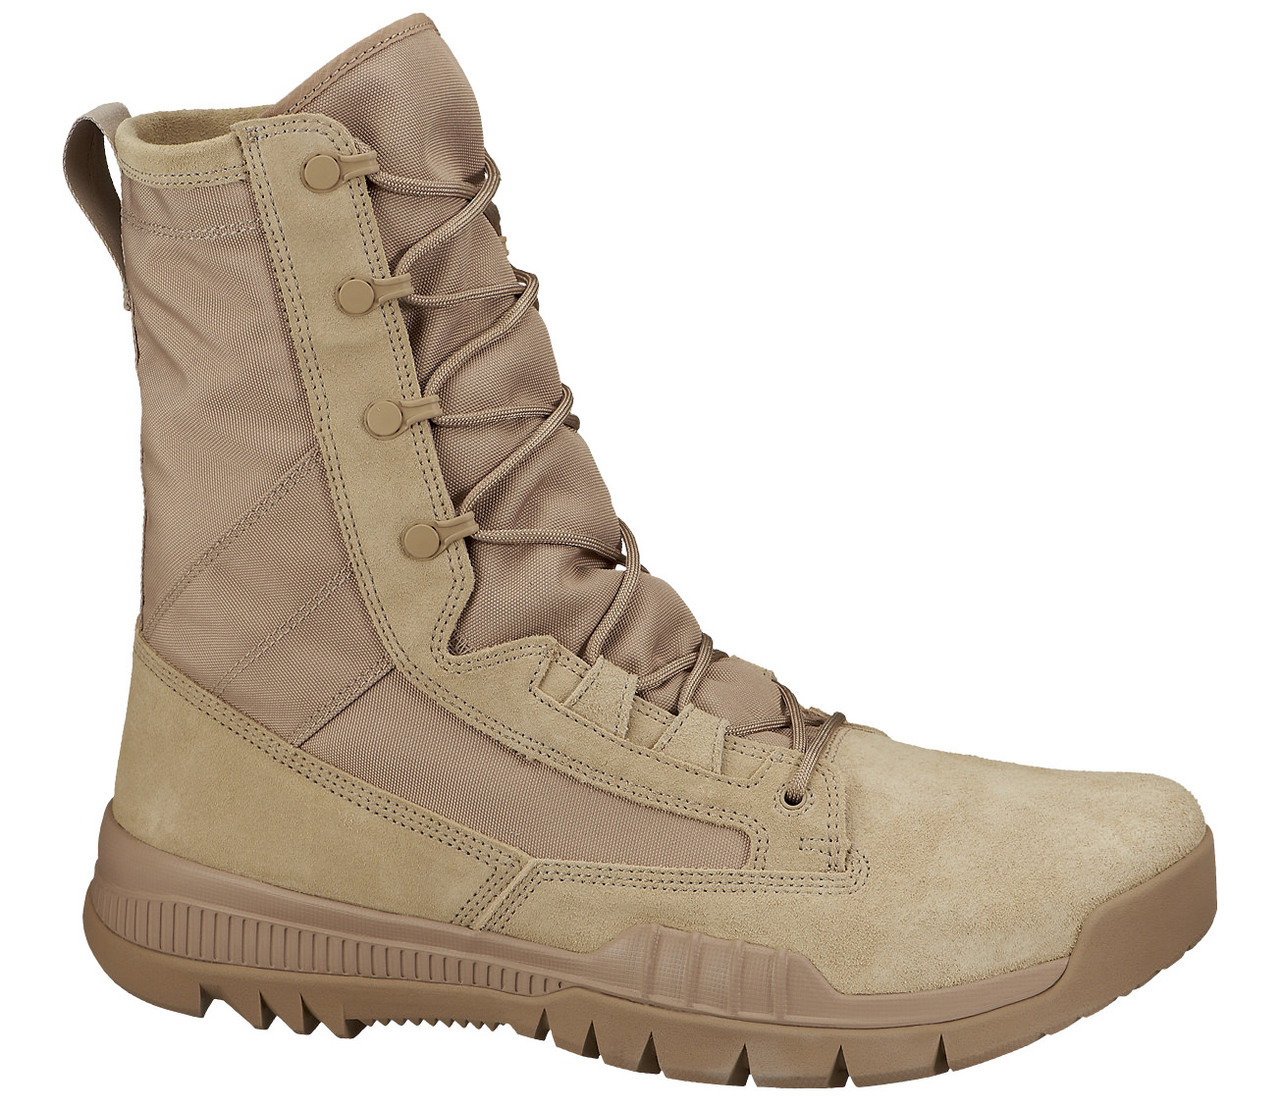 Garmont T8 Bifida Tactical Boots Review Authorized Boots